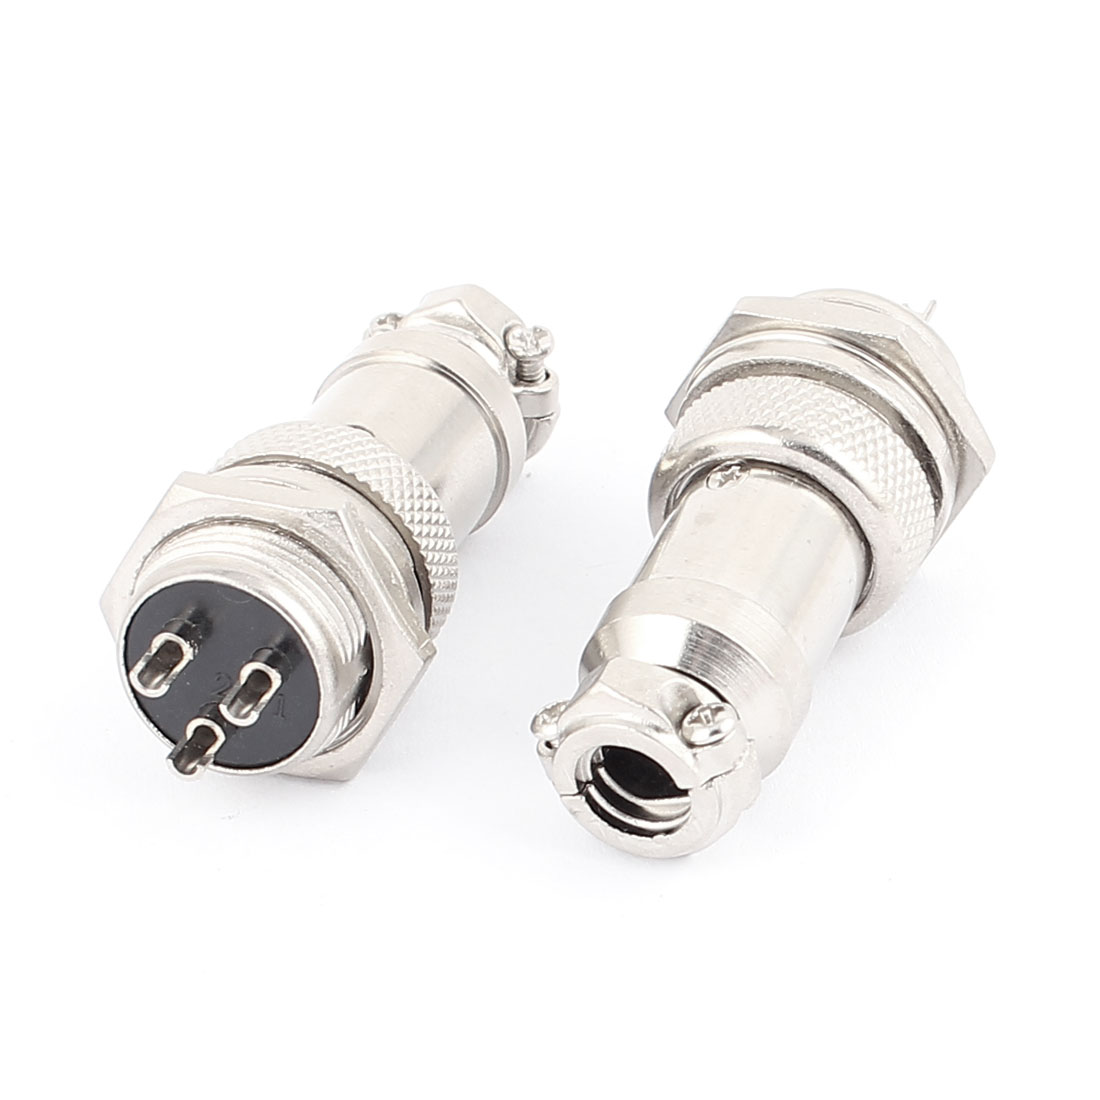 2Pcs Cable Mounting Aviation Connector 16mm Dia Screw GX16 3Pin AC 220V 20A